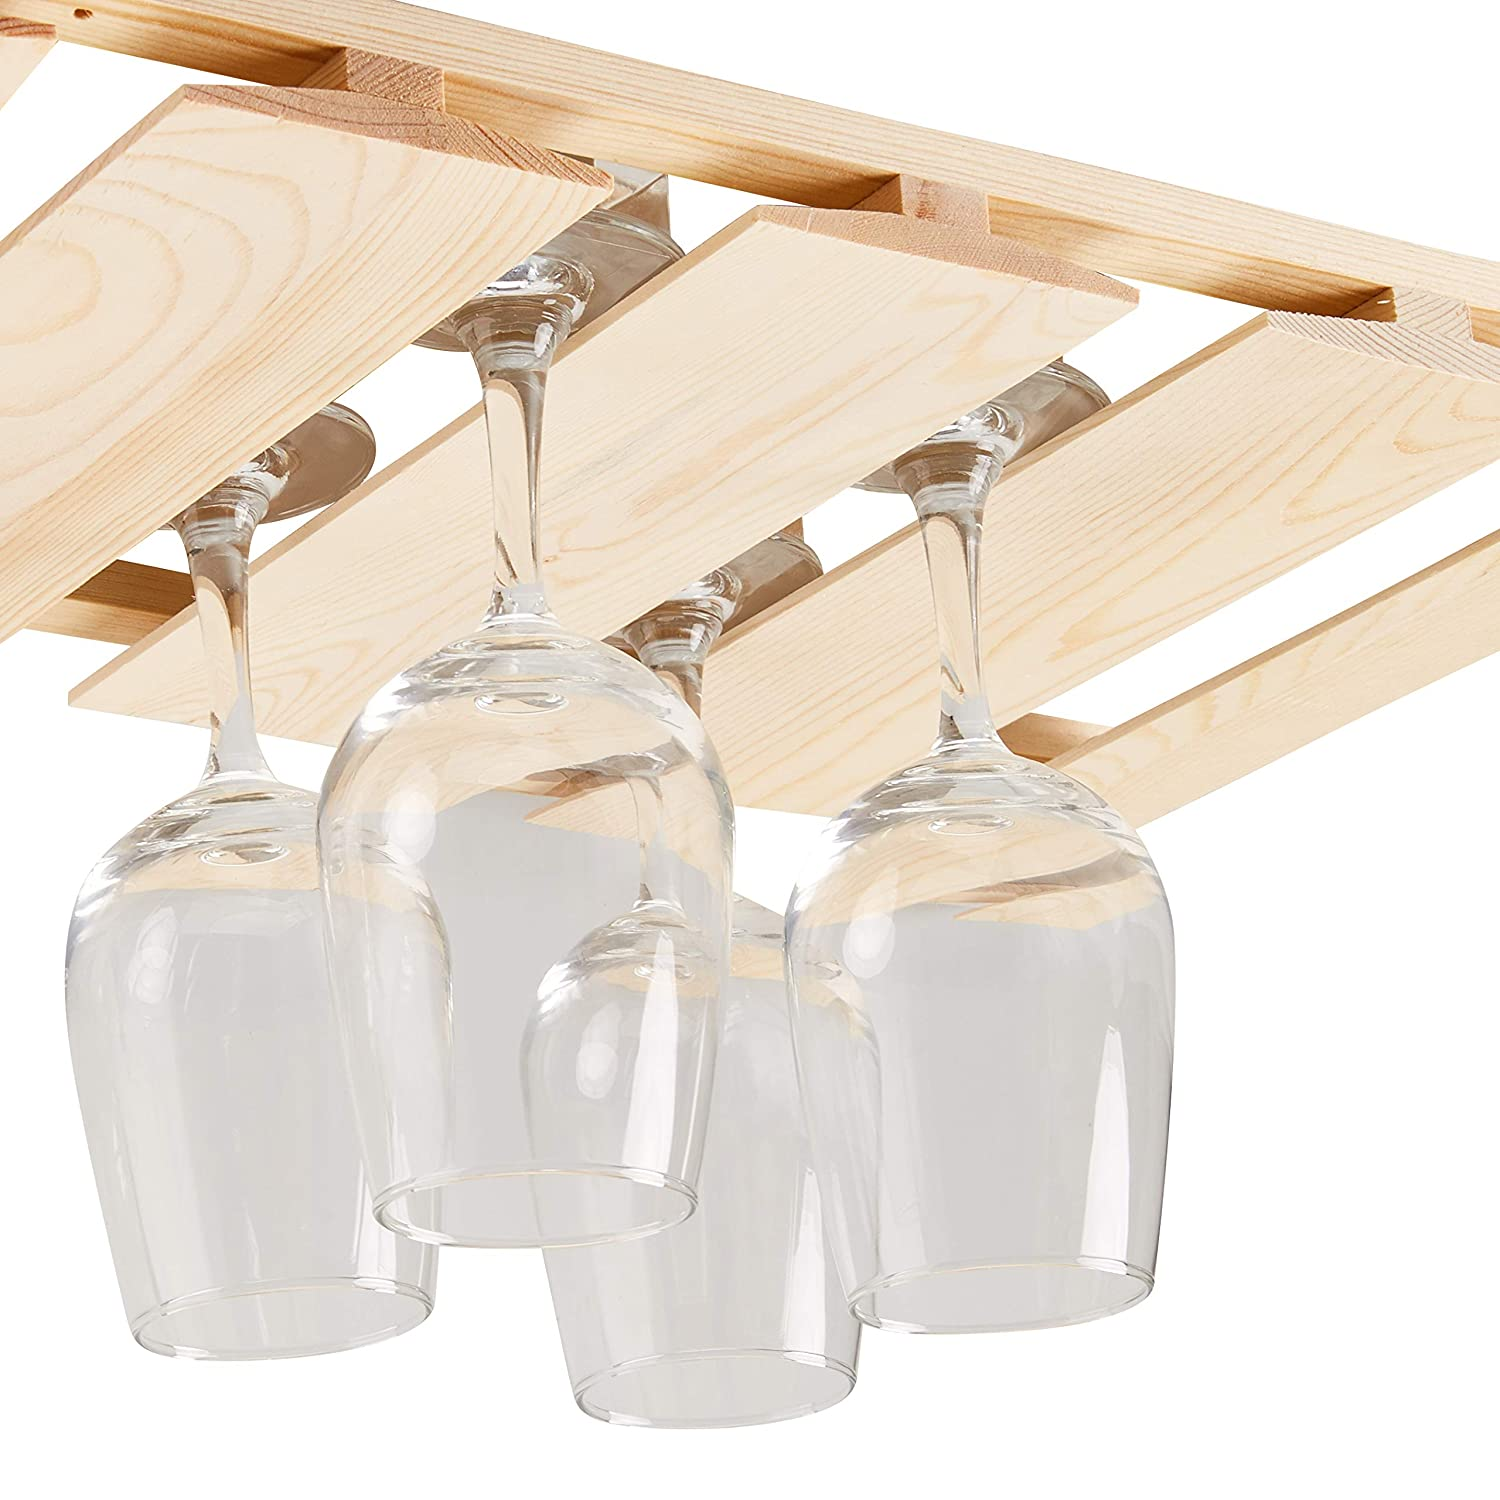 Amazoncom Wooden Wine Glass Rack Stemware Rack Hanging Wood